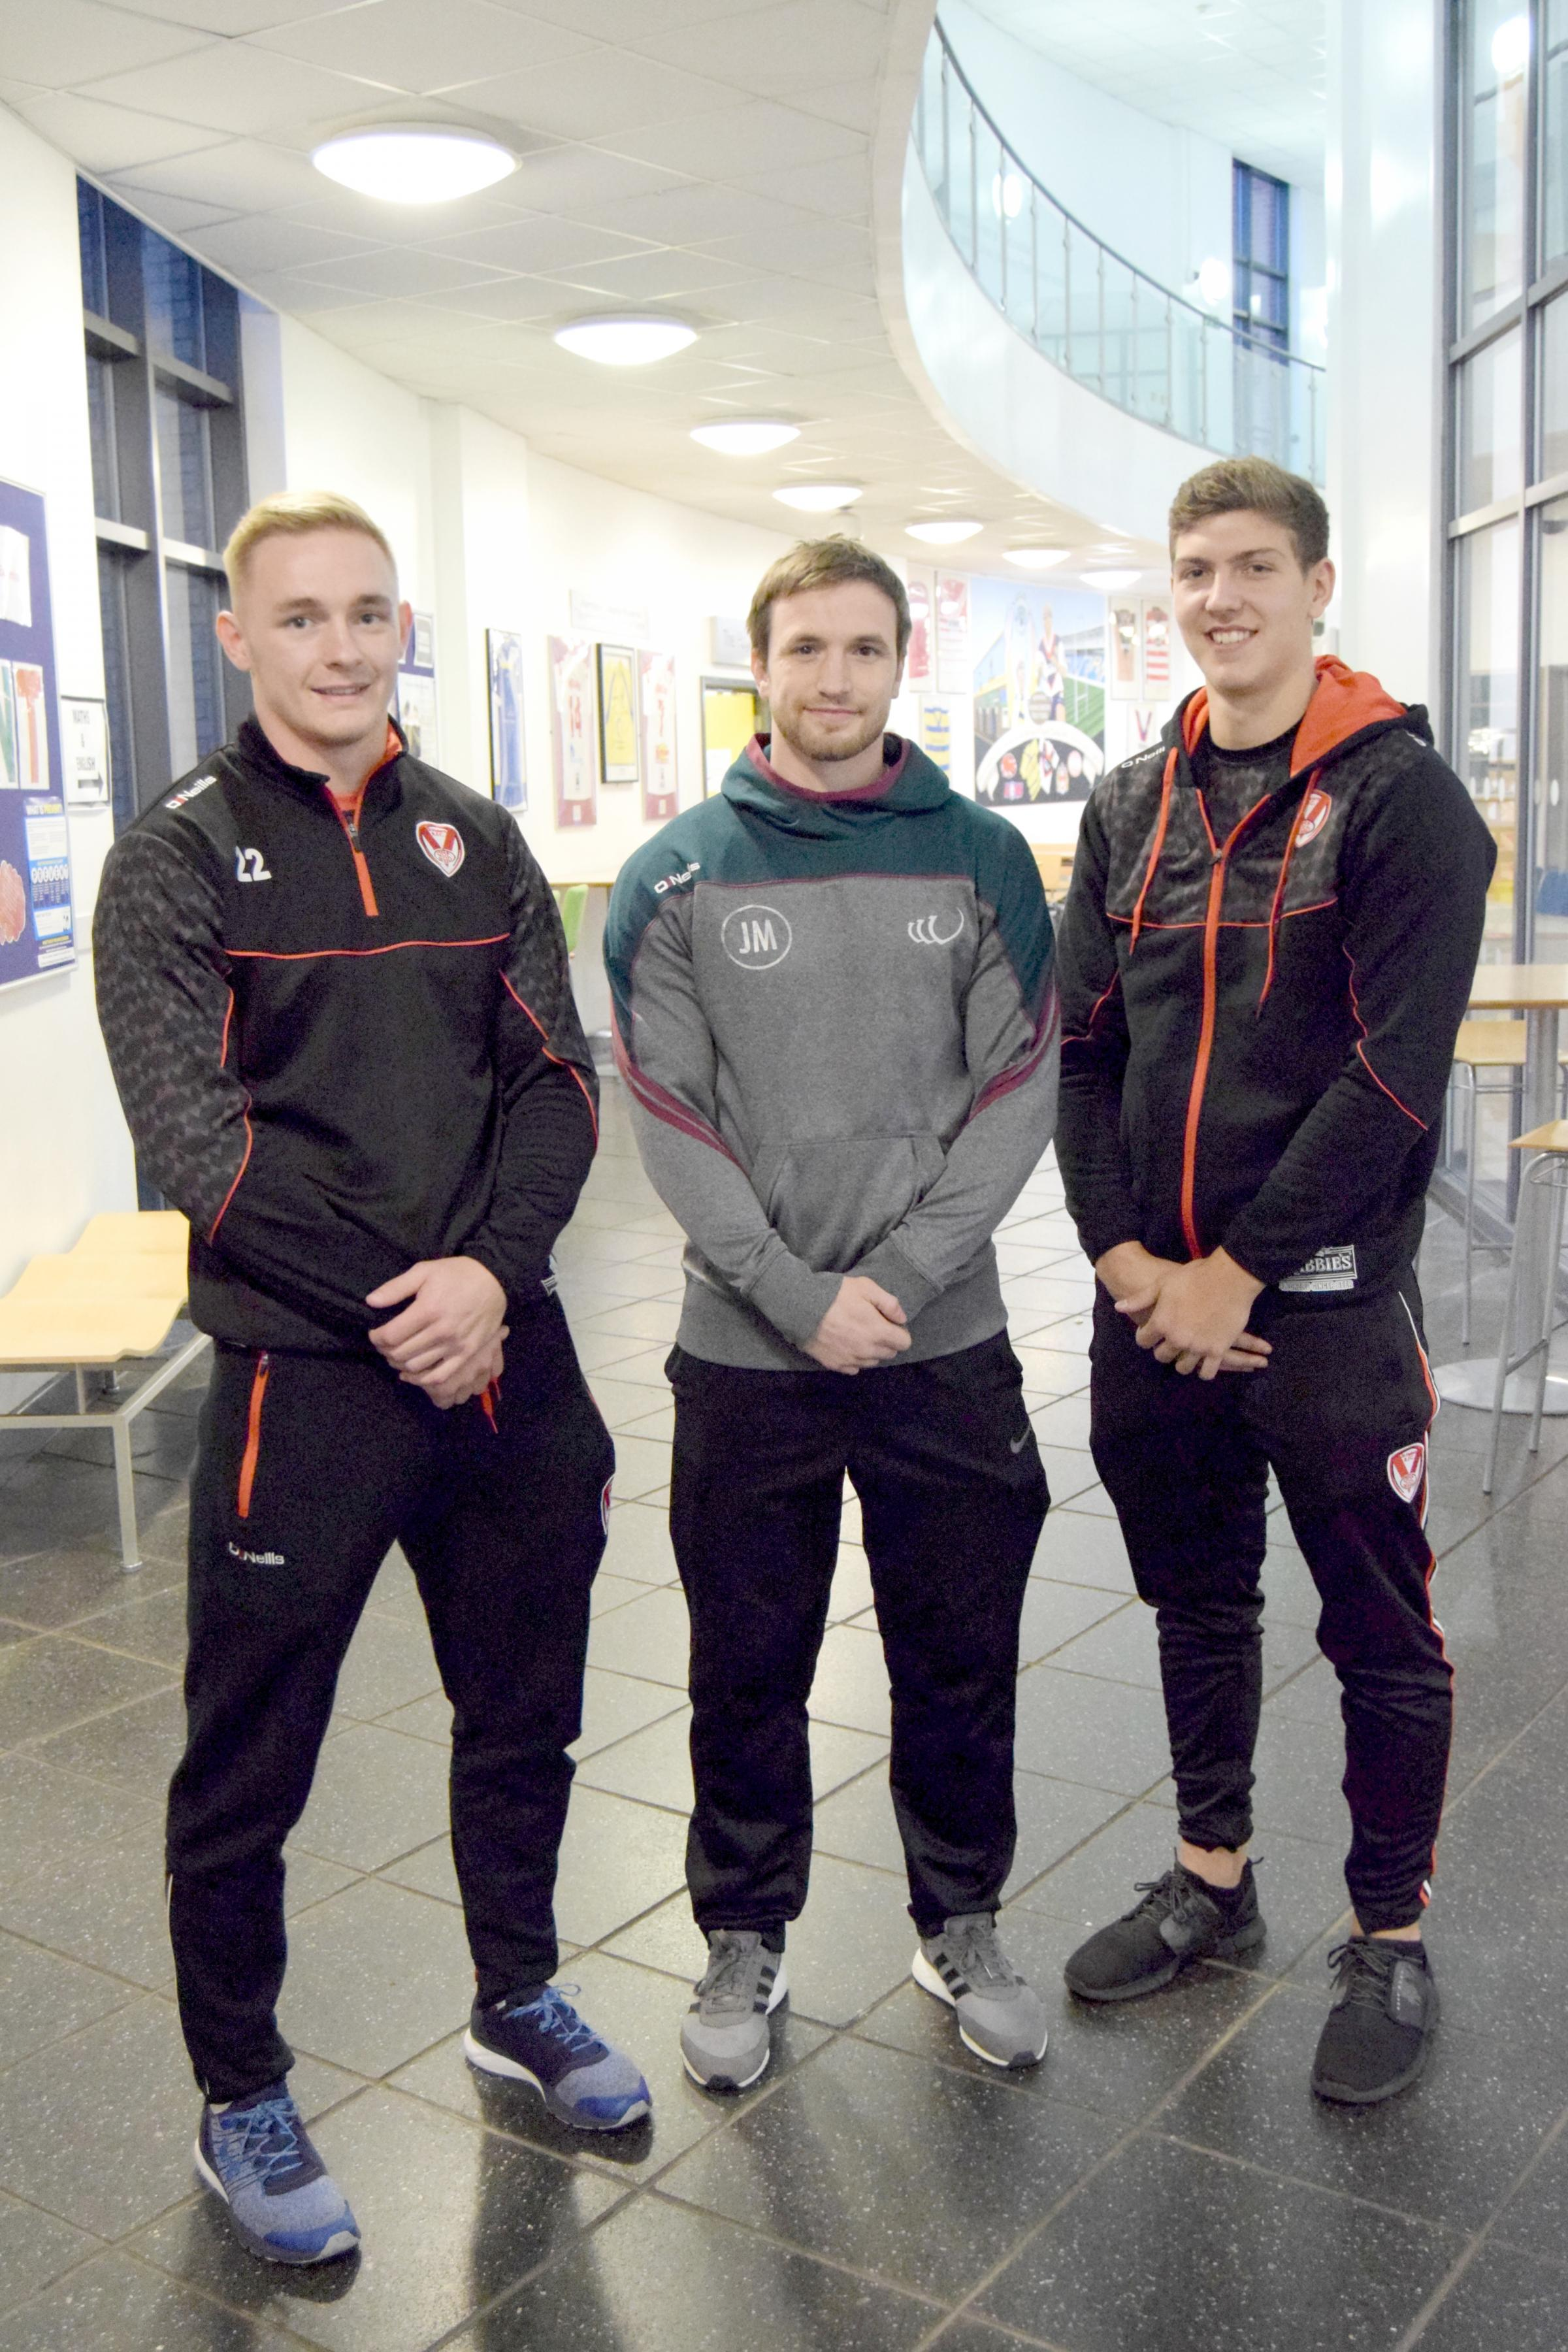 Rugby league stars Jake Spedding, Joe Mellor and Ben Morris